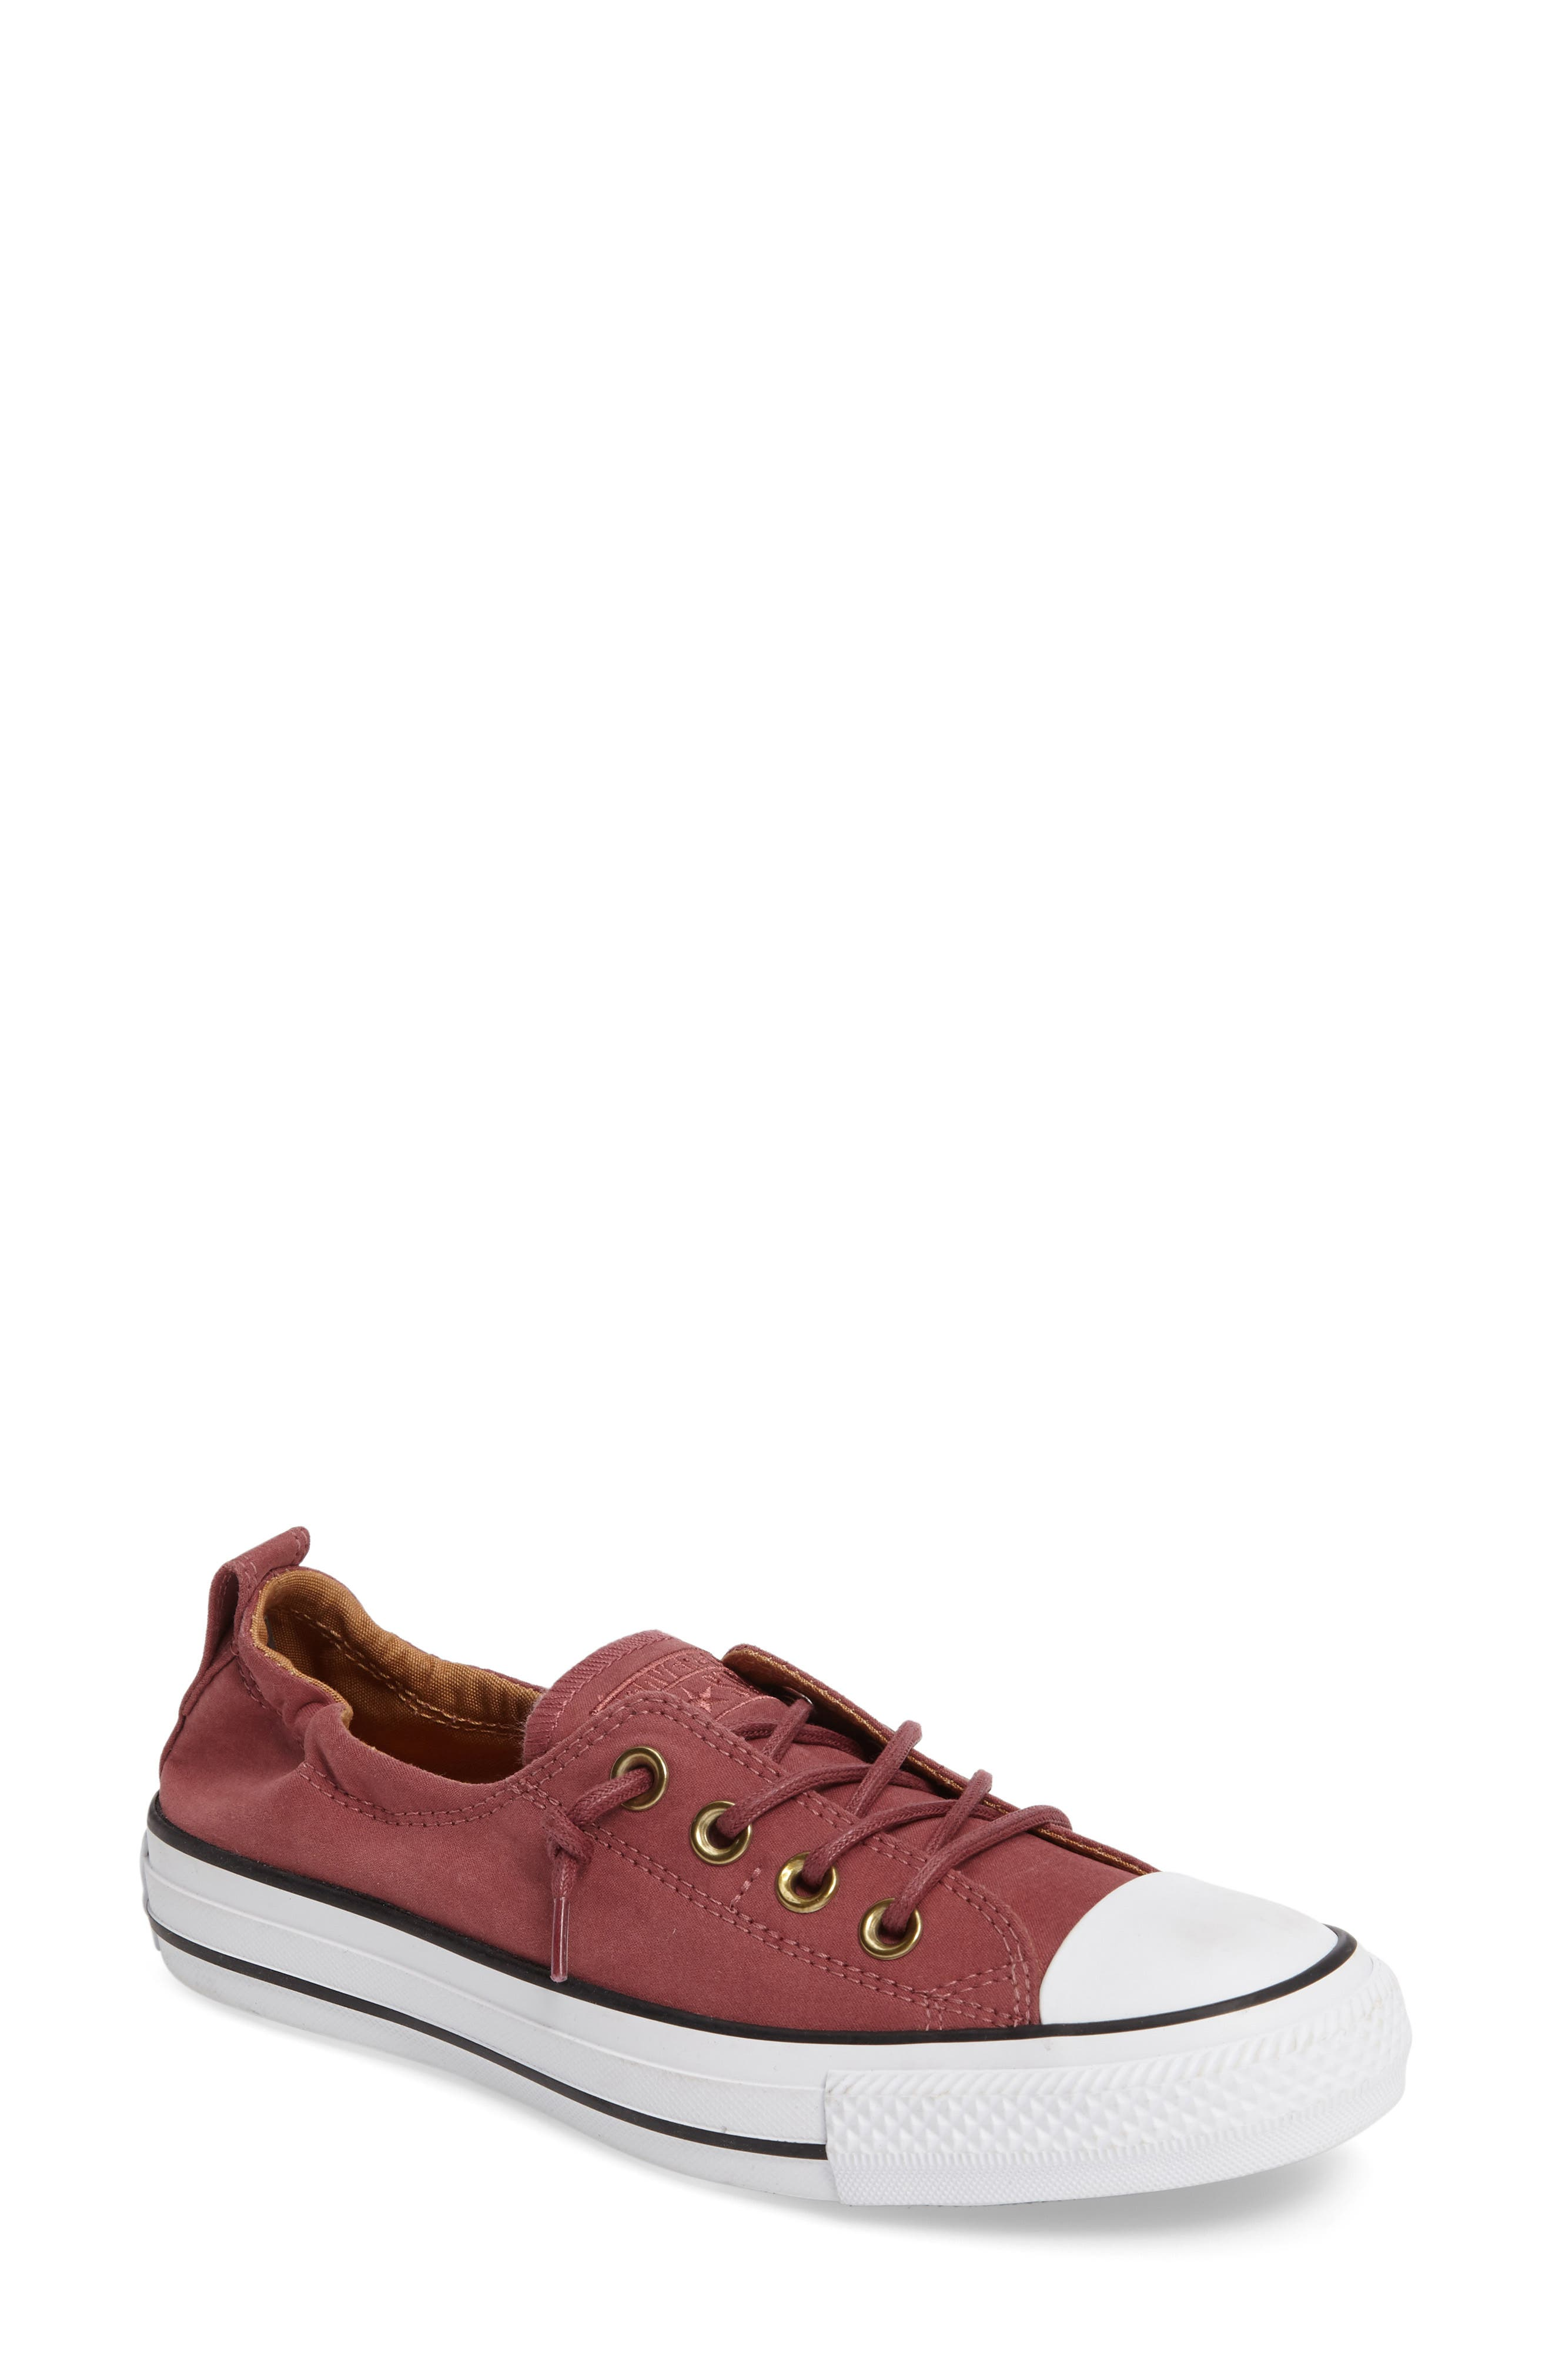 CONVERSE Chuck Taylor<sup>®</sup> All Star<sup>®</sup> Shoreline Peached Twill Sneaker